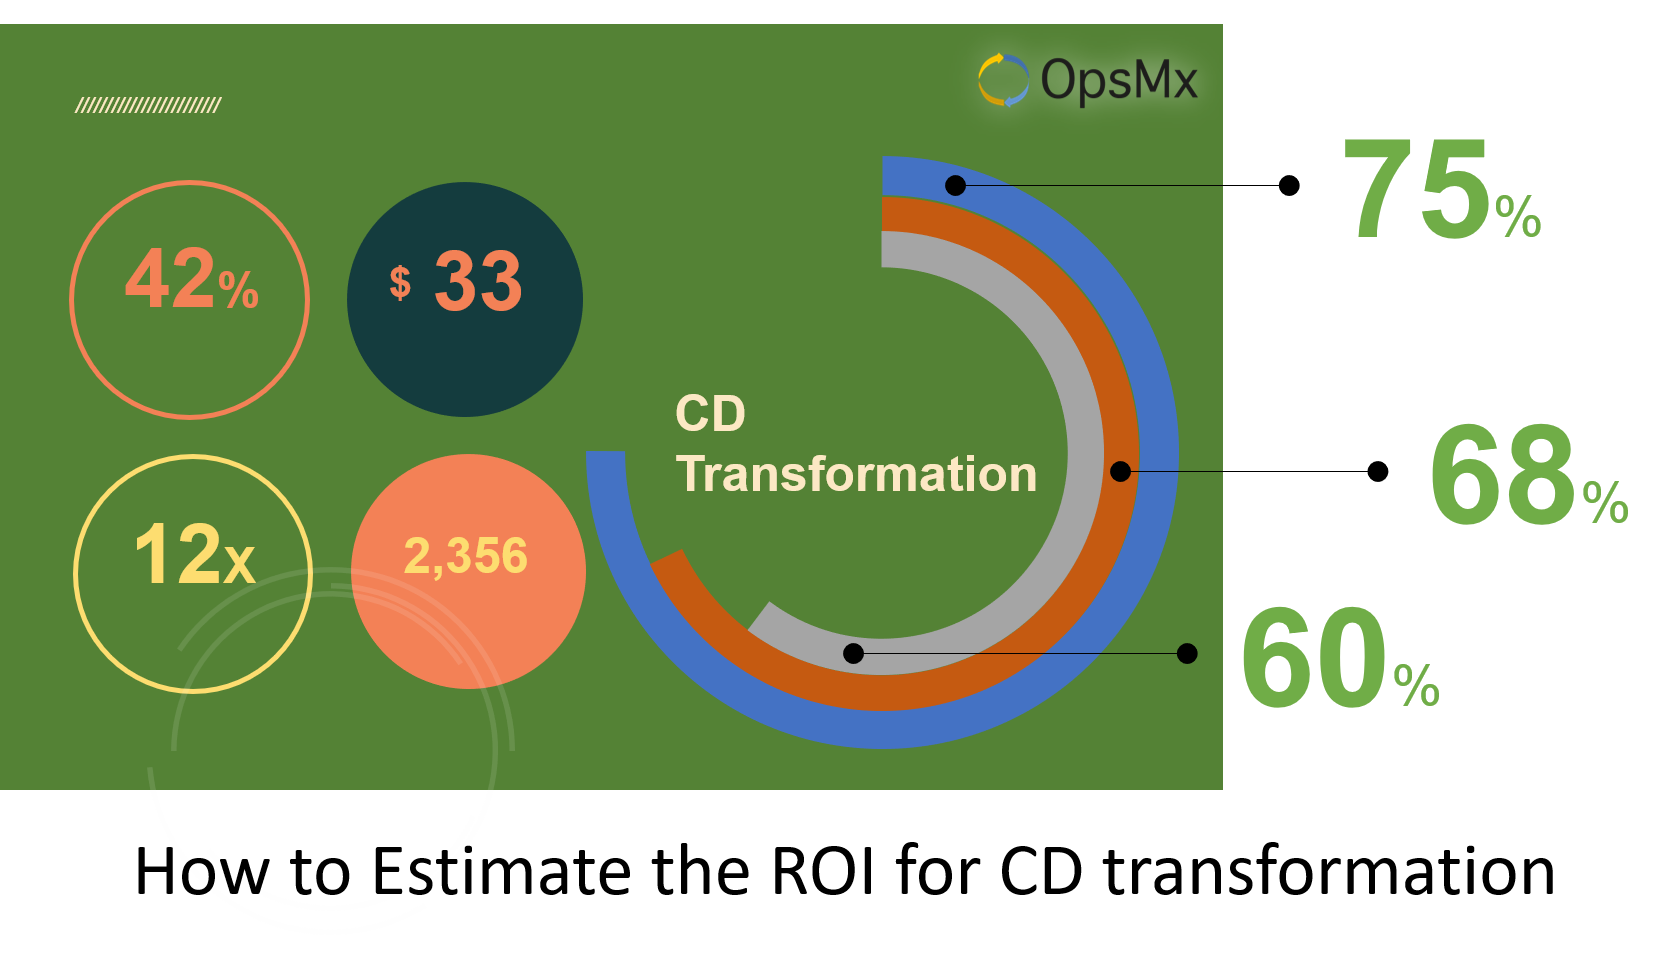 ROI for a CD Transformation